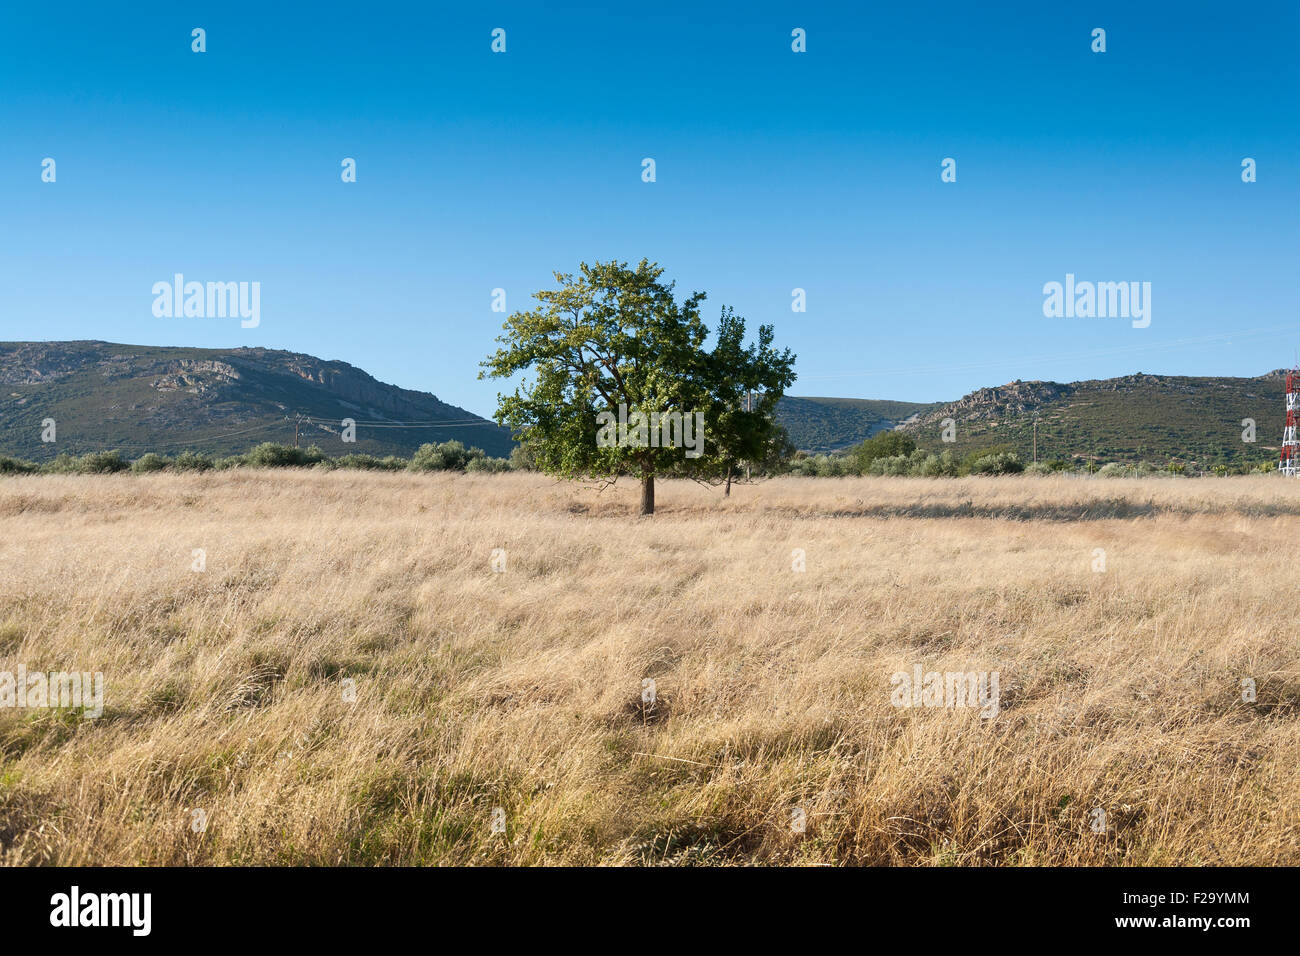 Tree in an agrarian landscape in Ciudad Real Province, Spain - Stock Image